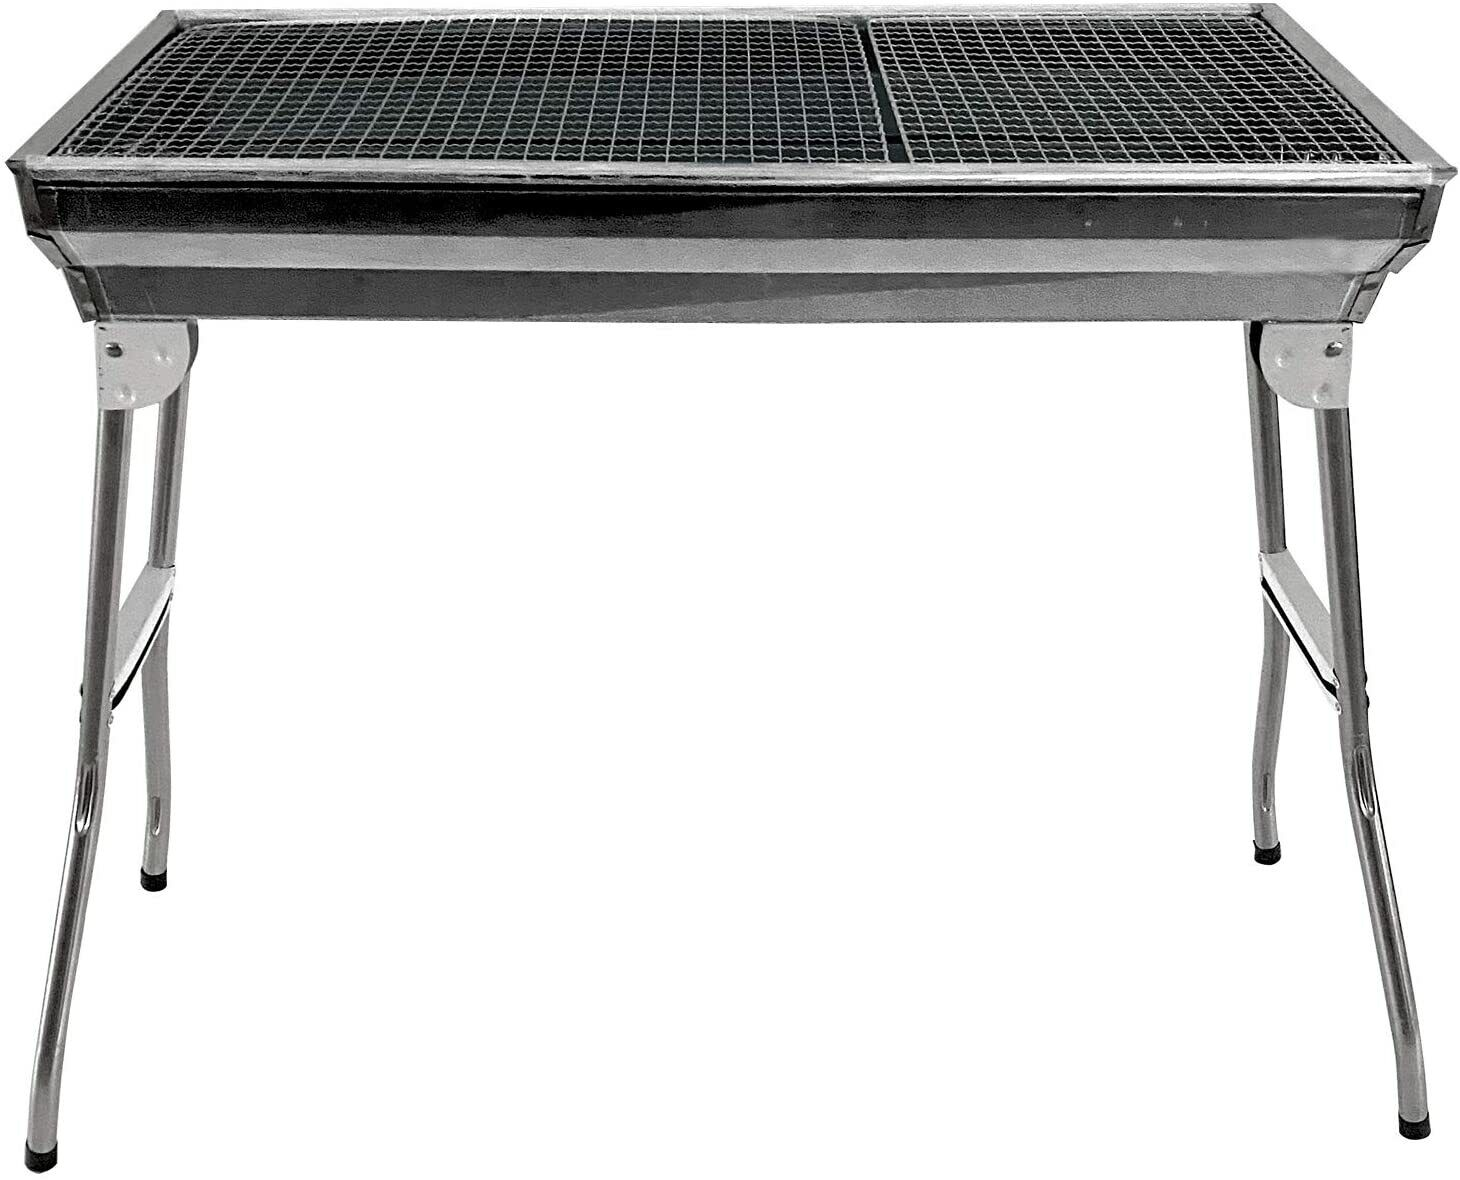 Large Stainless Steel BBQ Grill Portable Folding Outdoor Charcoal Barbeque Pit